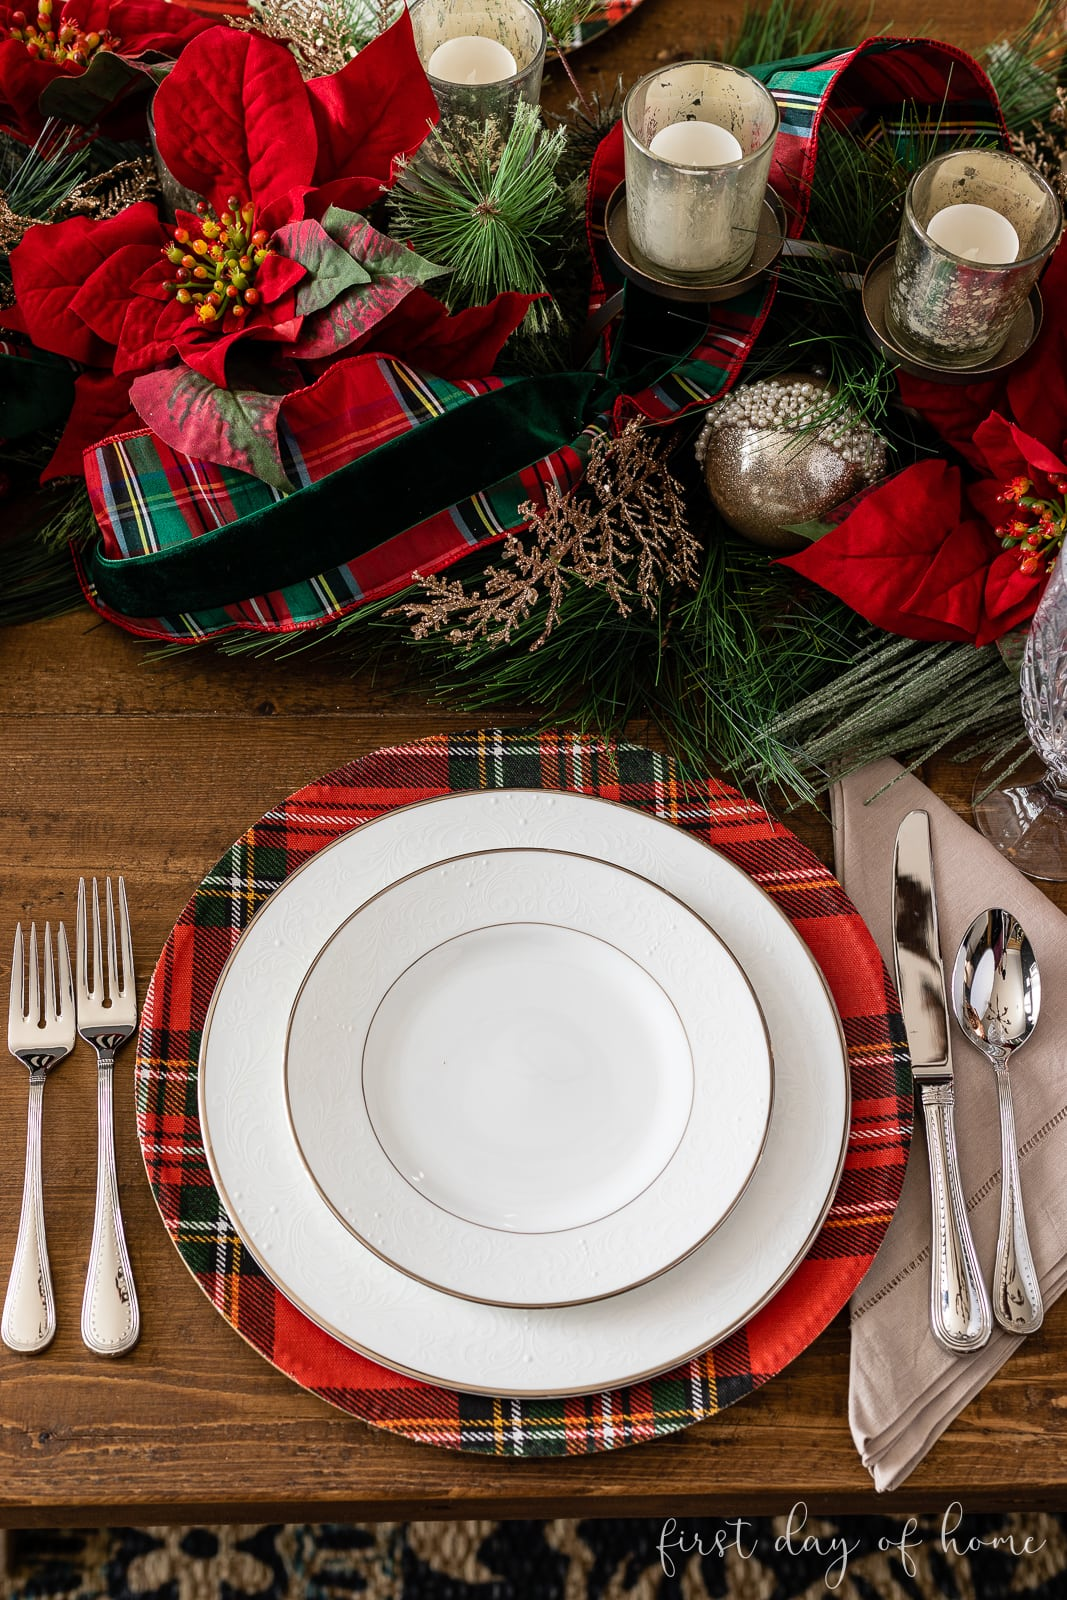 Christmas place setting with plaid charger plate and white china next to table centerpiece